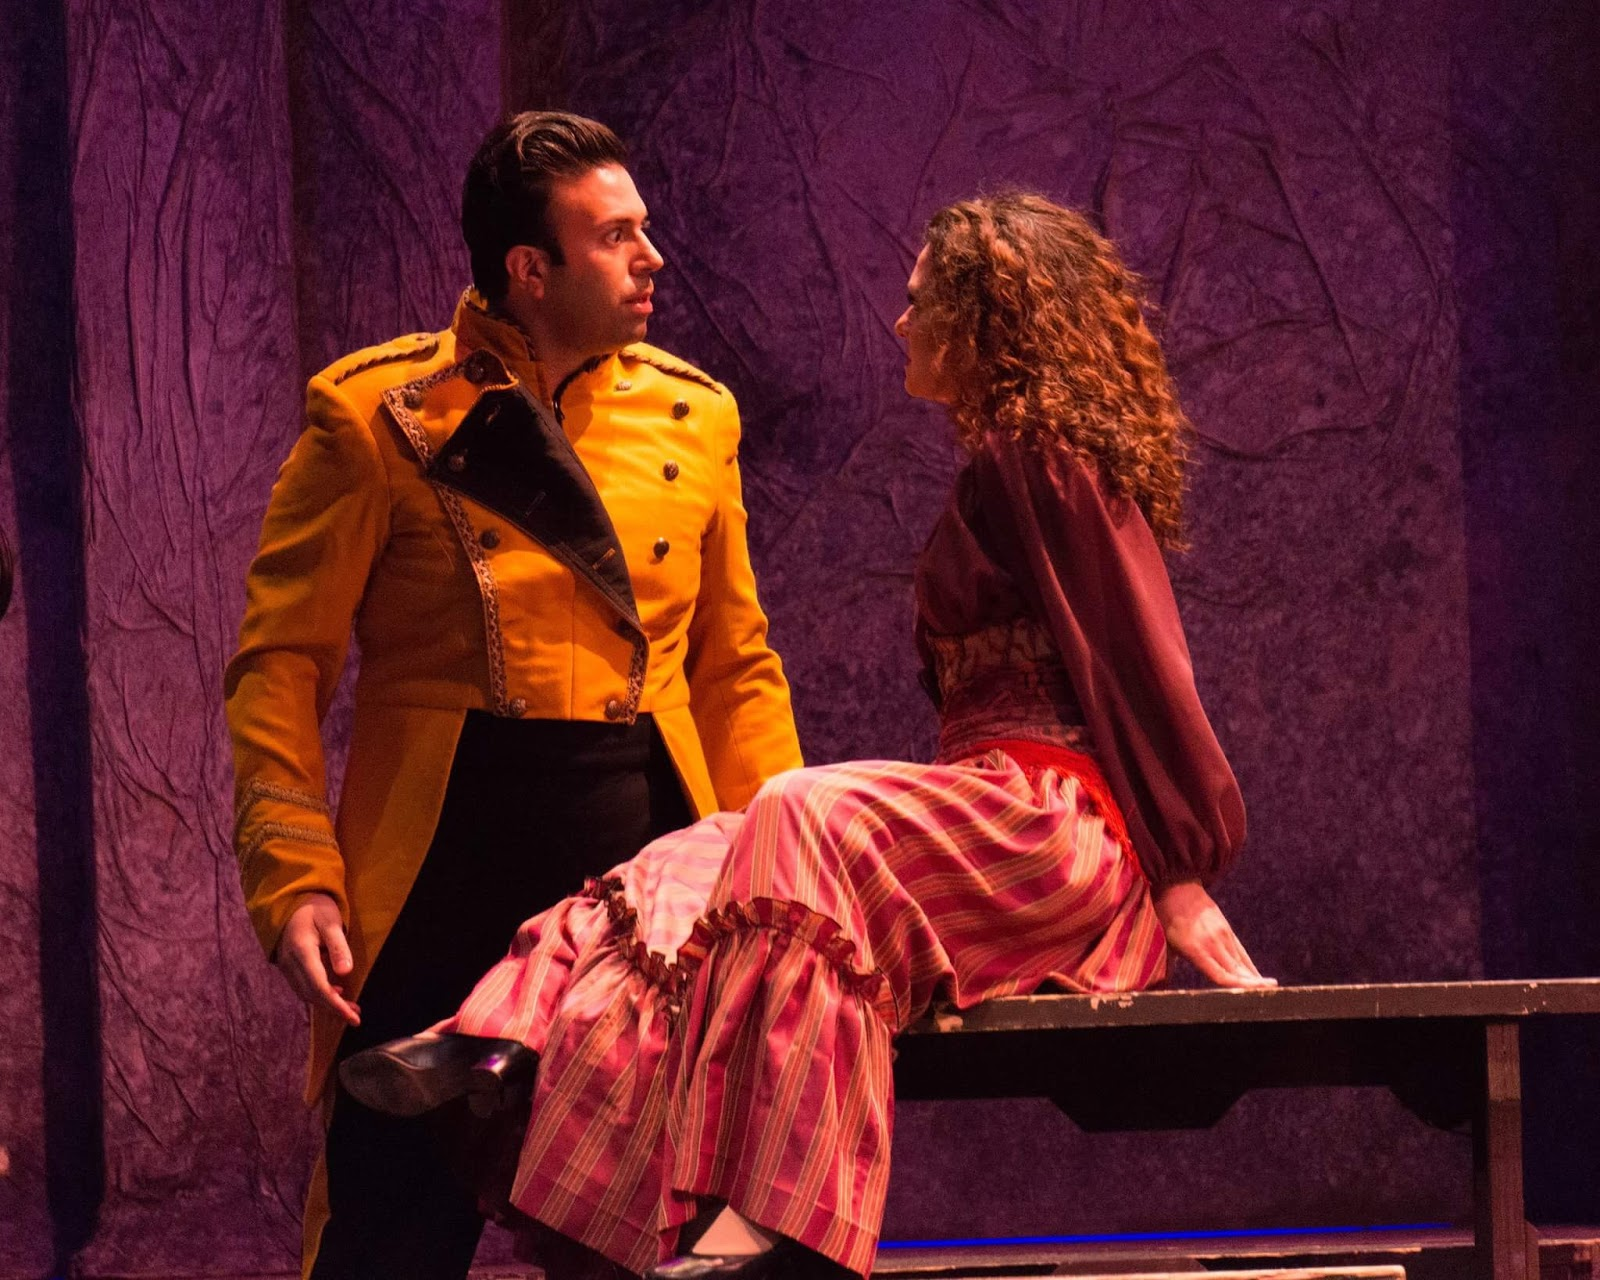 IN PERFORMANCE: Mezzo-soprano SANDRA PIQUES EDDY as Carmen (right) and tenor DINYAR VANIA as Don José (left) in Greensboro Opera's production of Georges Bizet's CARMEN, January 2017 [Photo © by Greensboro Opera]